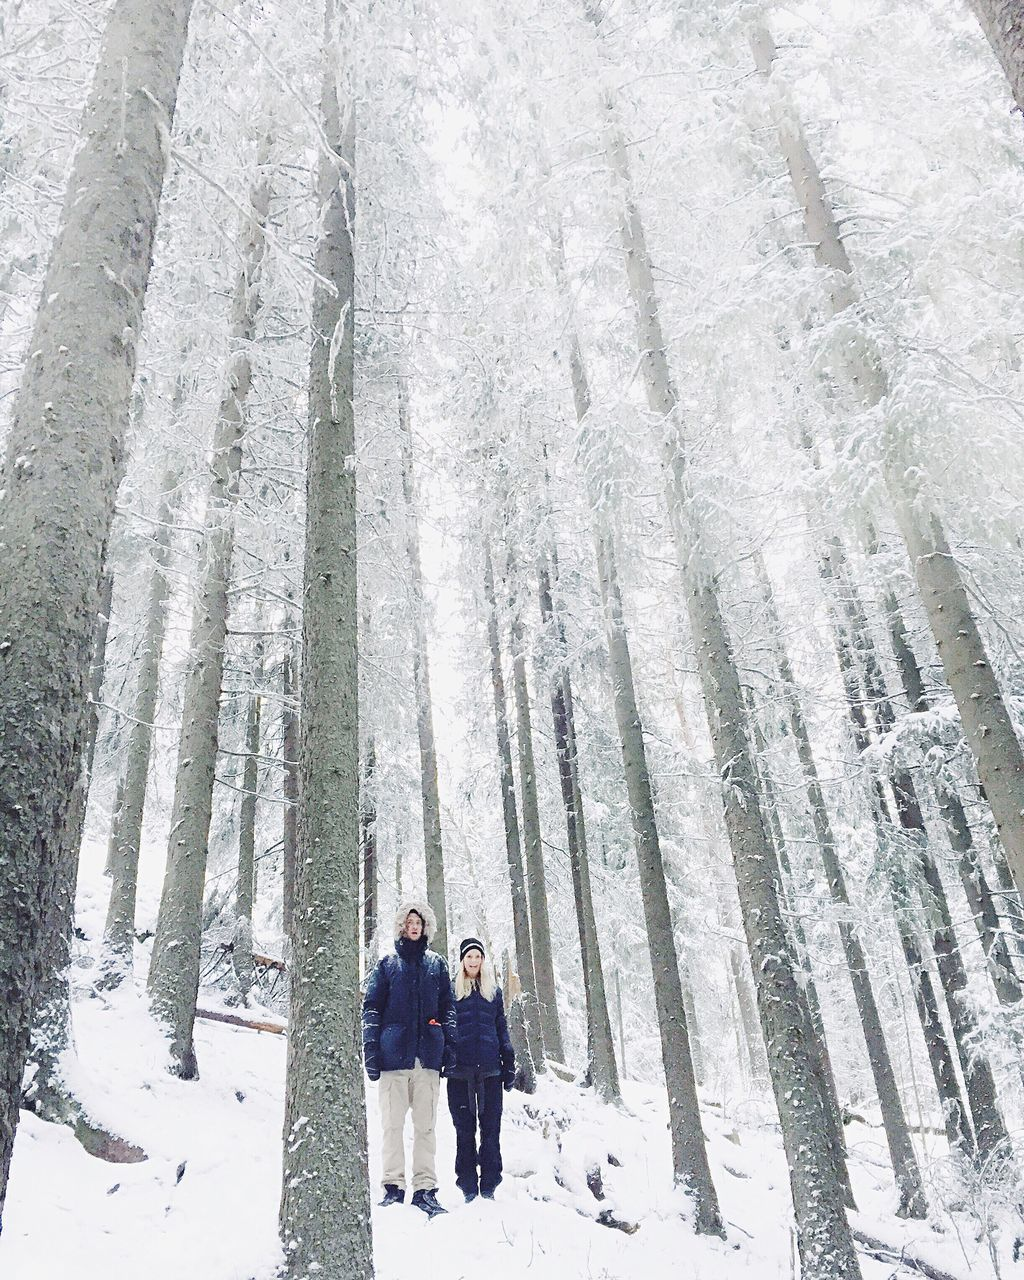 winter, snow, cold temperature, togetherness, warm clothing, nature, outdoors, forest, leisure activity, vacations, men, happiness, son, day, snowing, tree, lifestyles, smiling, full length, group of people, real people, women, bonding, adult, beauty in nature, people, young adult, adults only